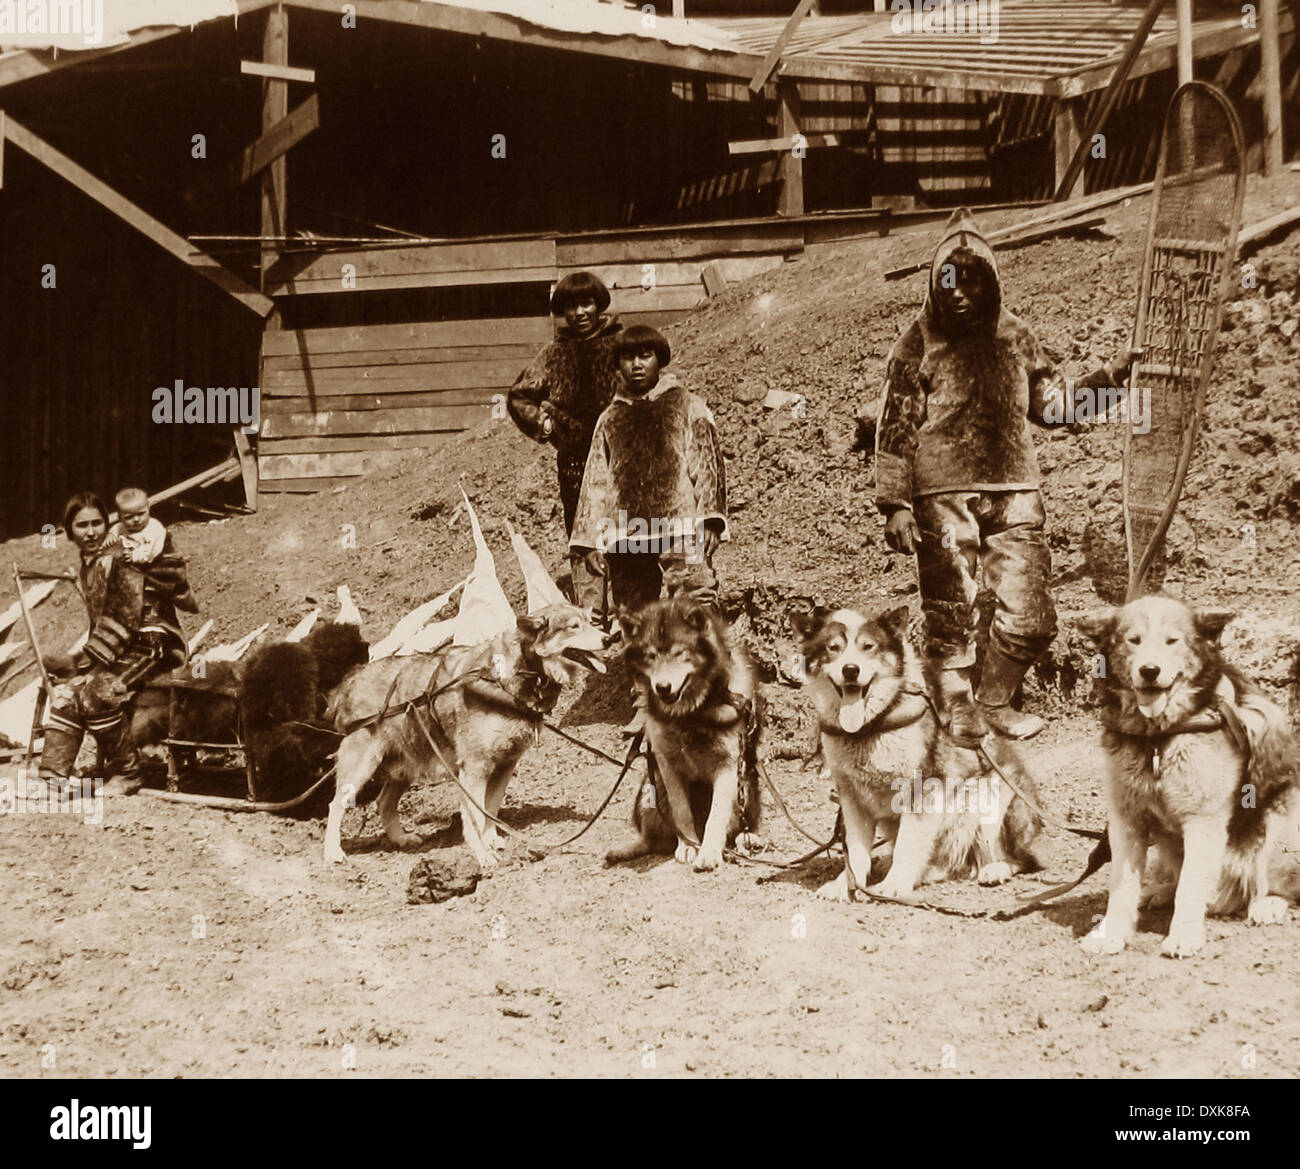 Eskimo dog team St. Louis World's Fair USA in 1904 - Stock Image